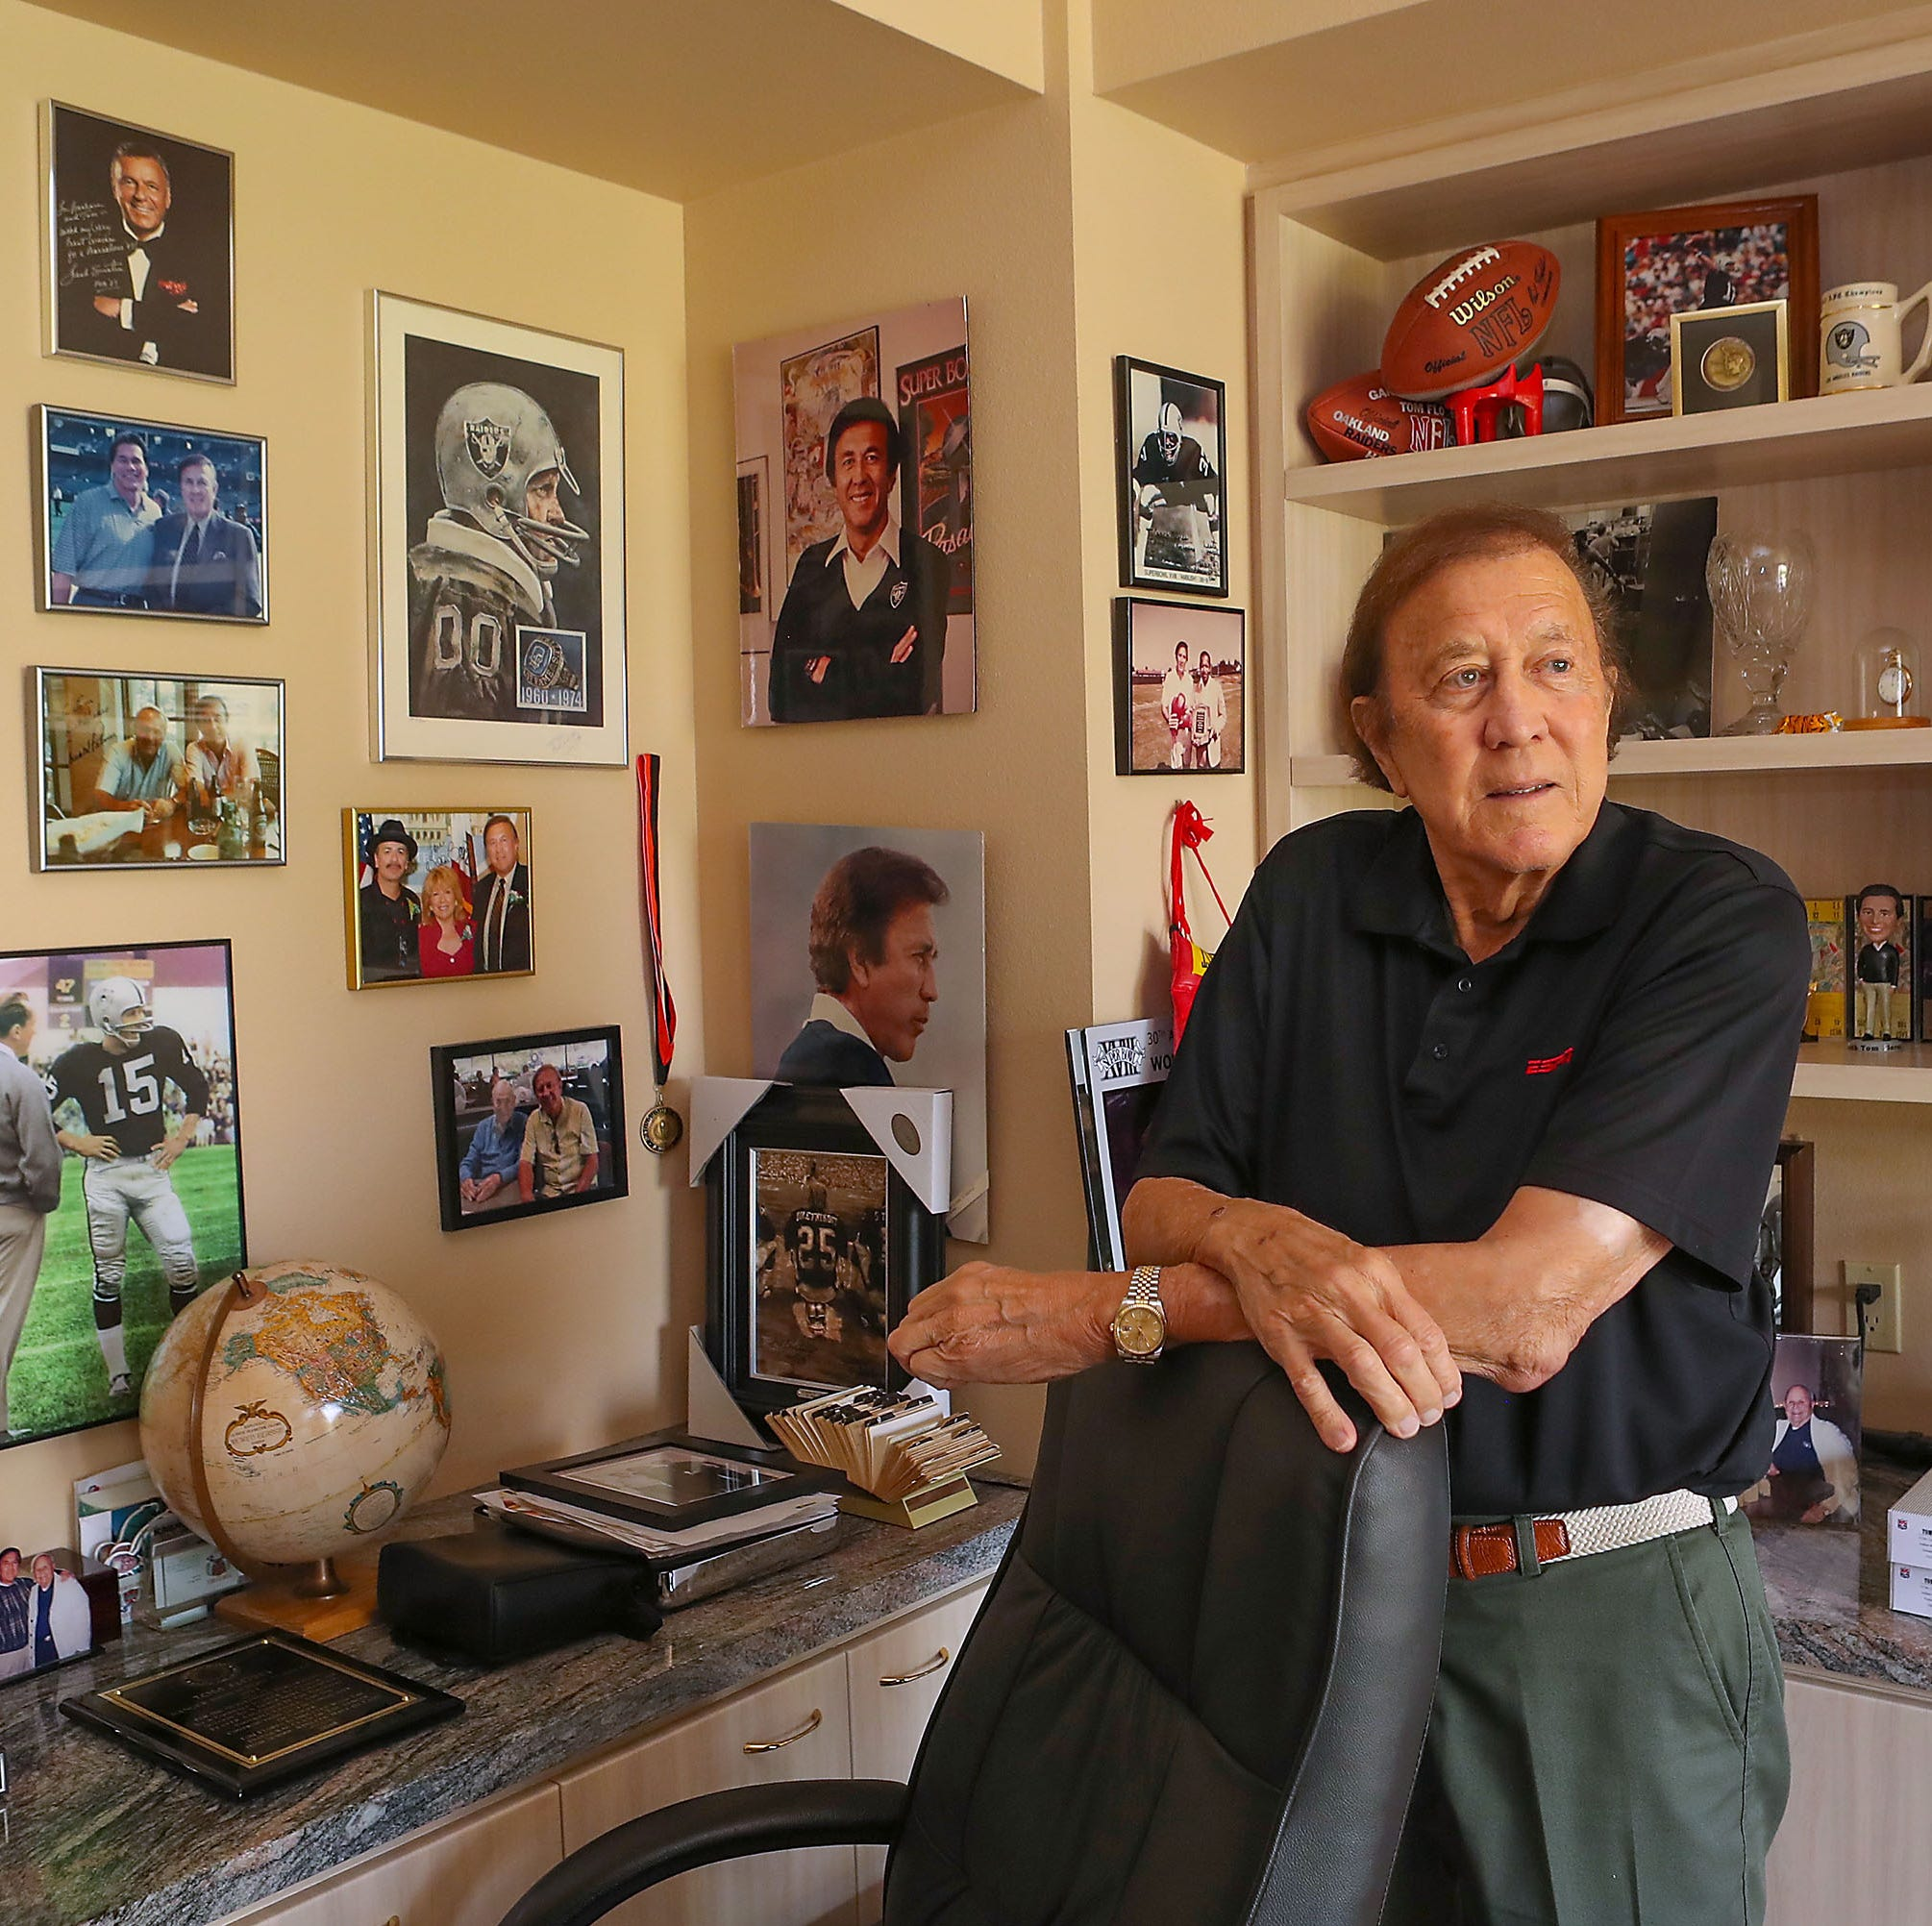 Tom Flores, desert resident with 4 Super Bowl rings, denied election to Pro Football Hall of Fame